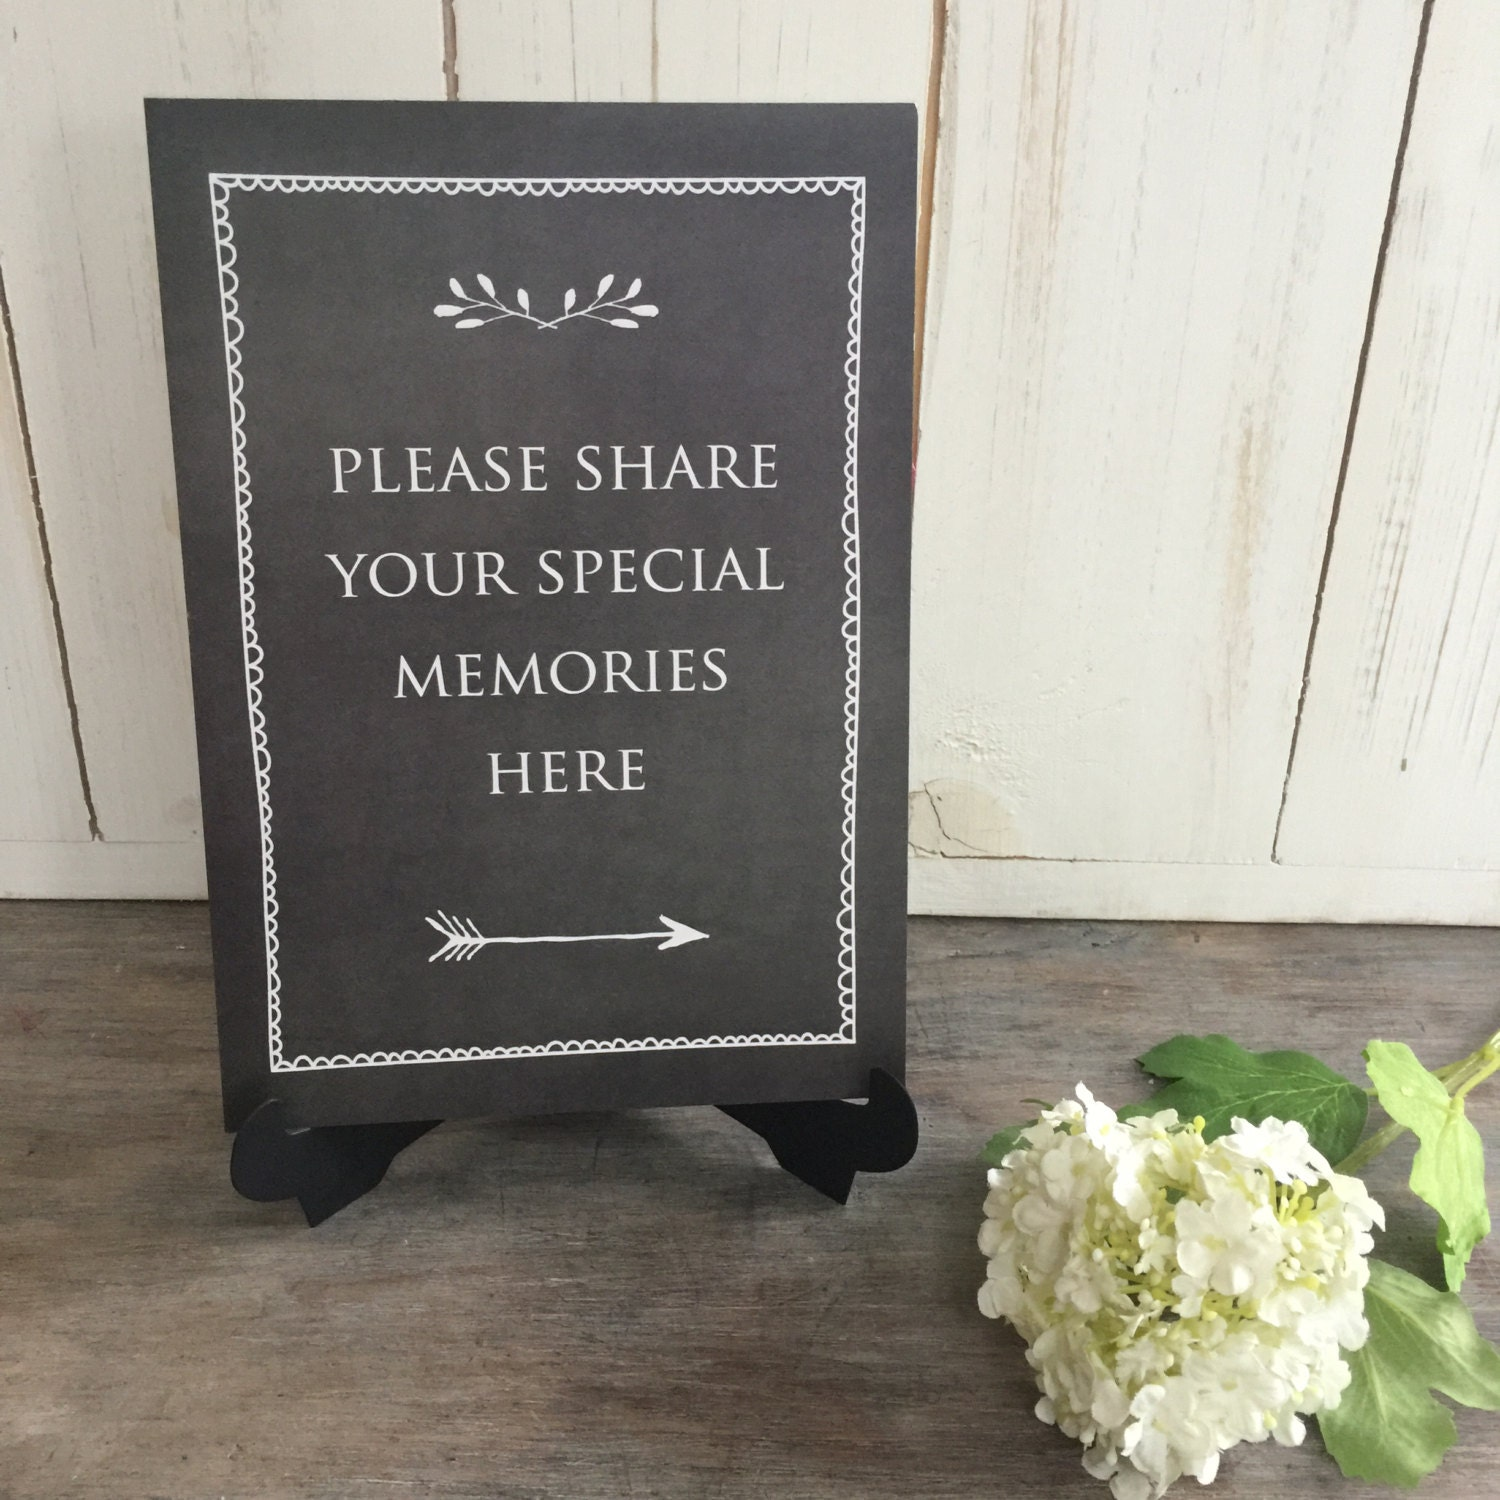 a childhood memory of a funeral